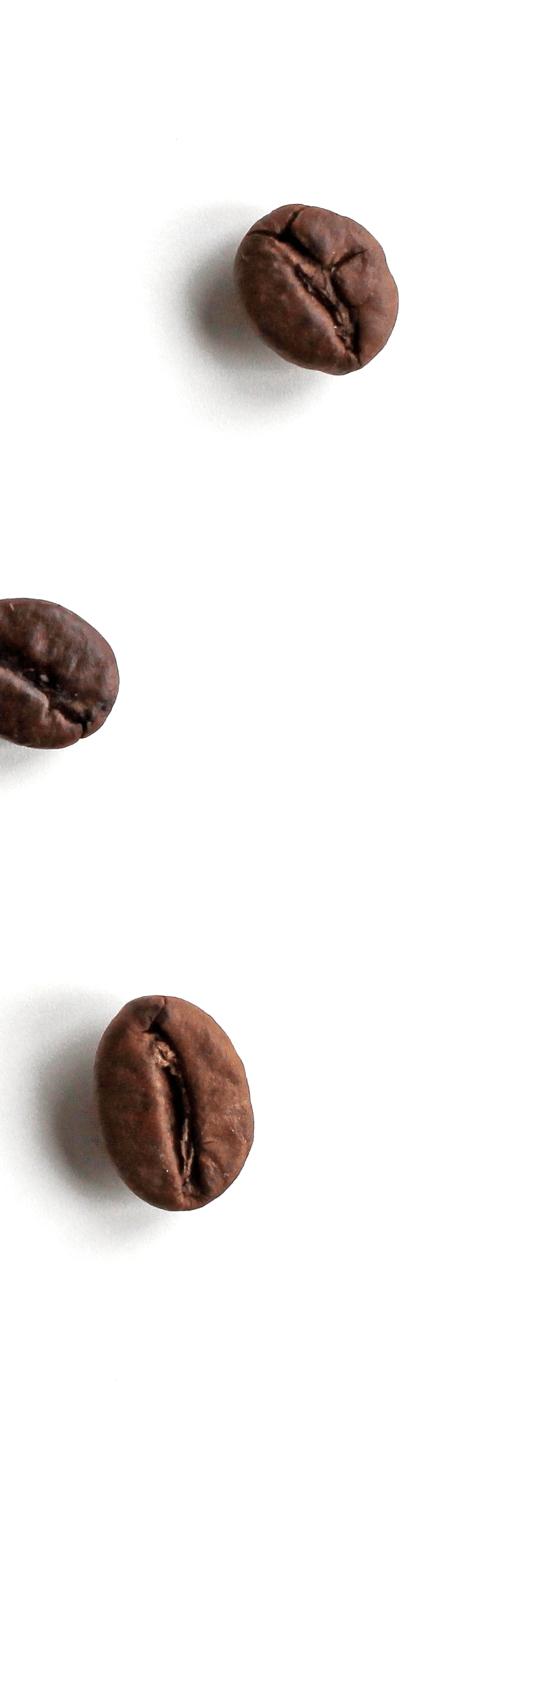 Coffee Beans from NESCAFE